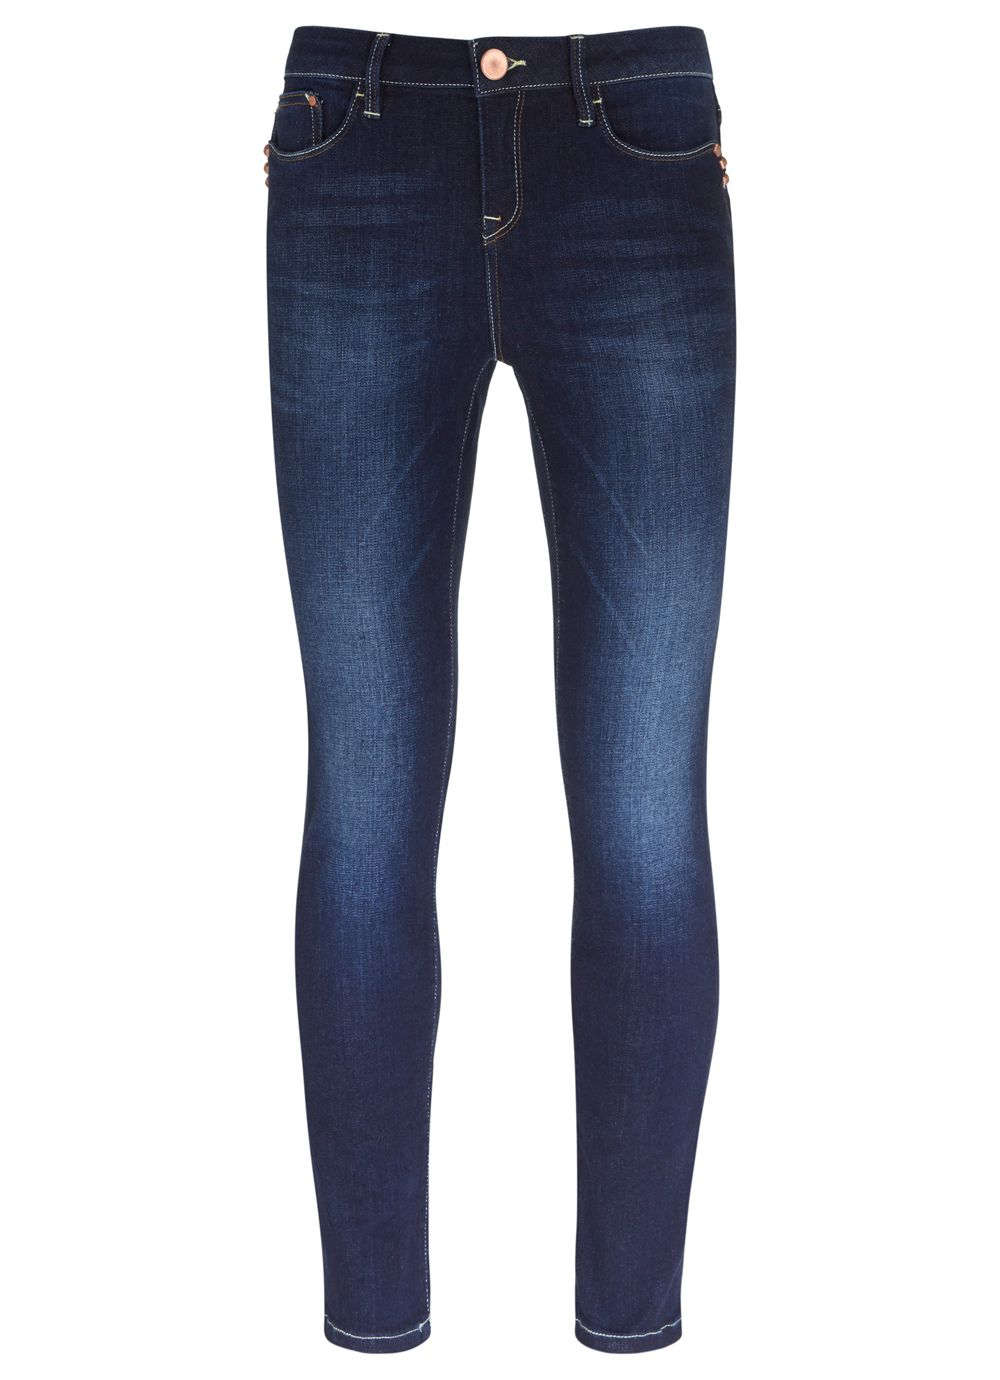 Boston Dark Indigo Jean